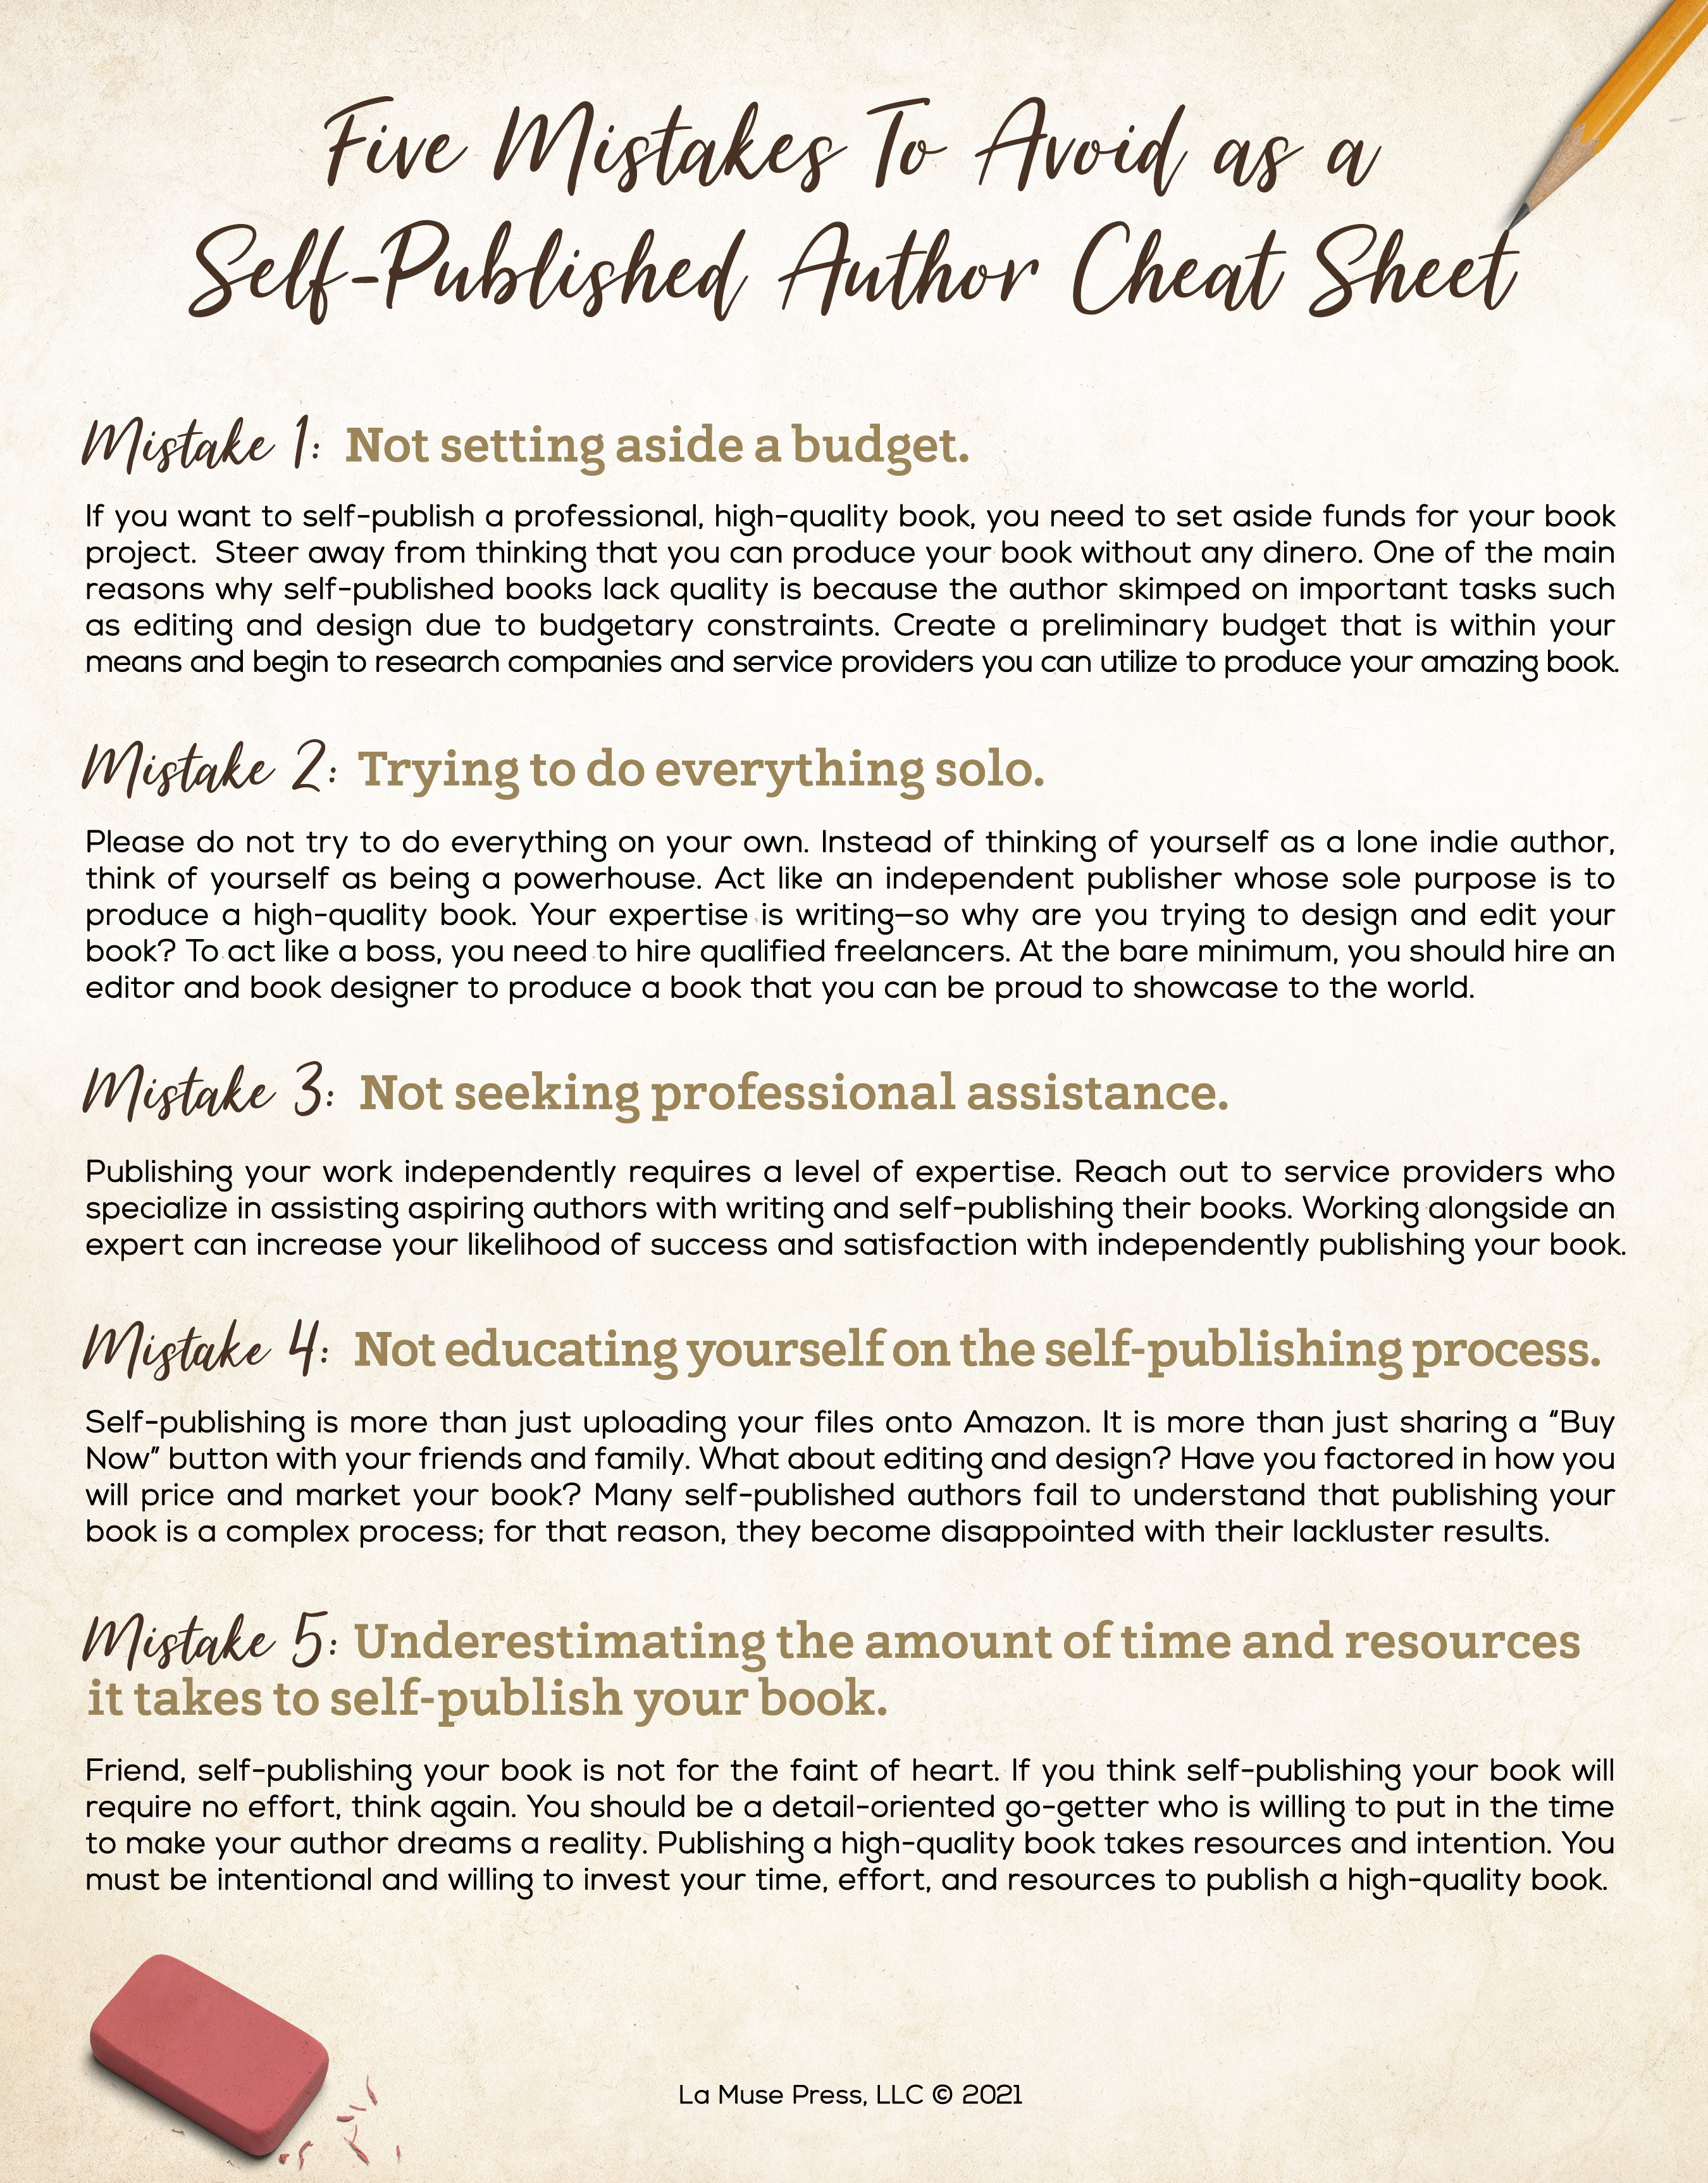 Five Mistakes To Avoid as a Self-Published Author  Cheat Sheet